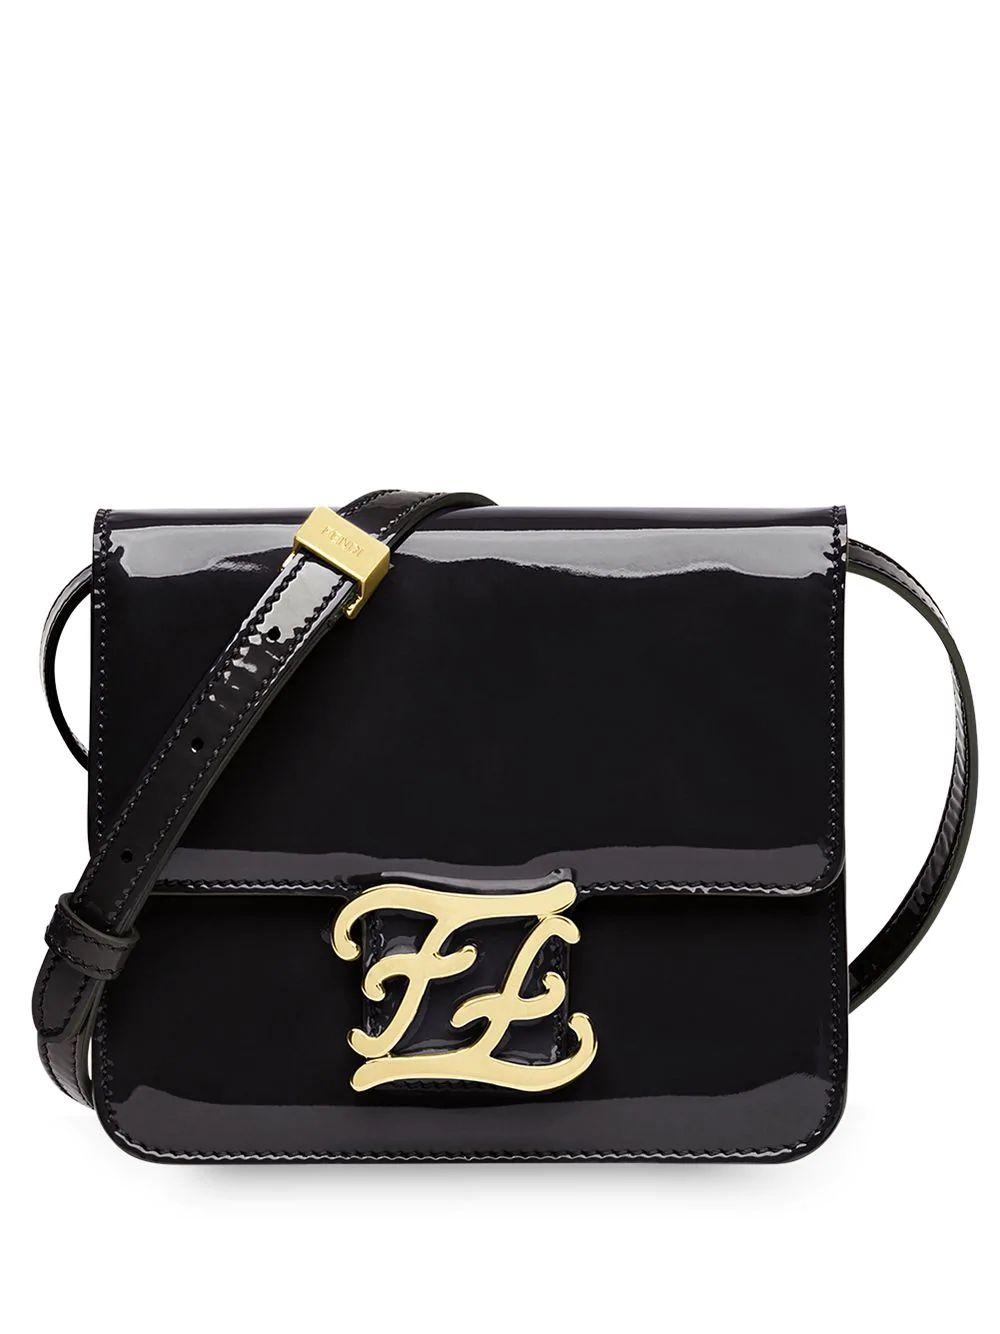 Karligraphy Flap Bag With Monogram Hardware